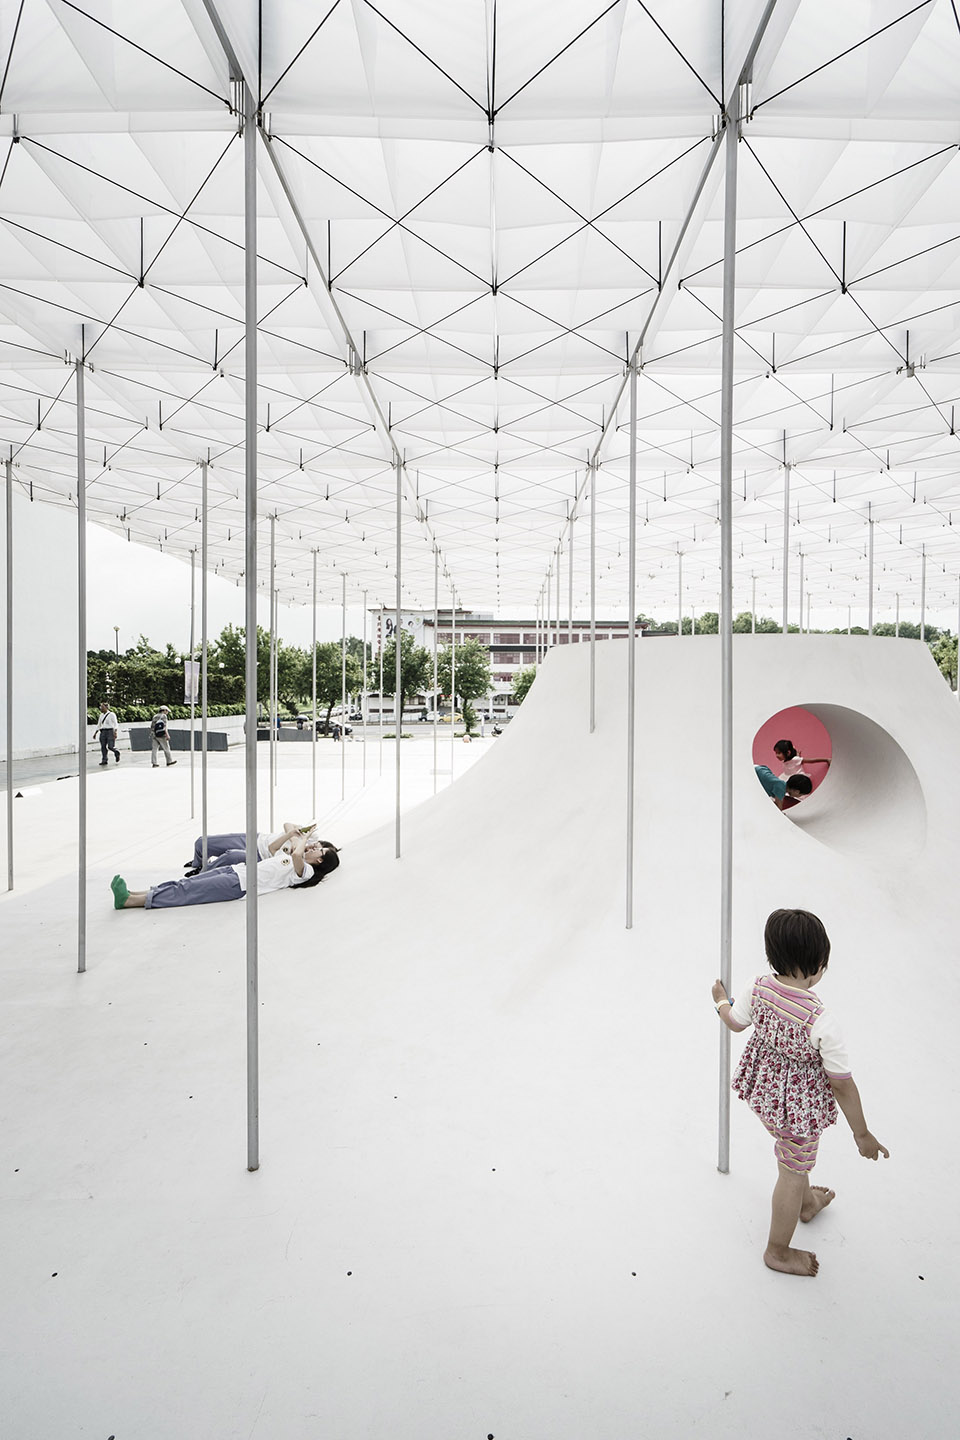 003-Floating-by-Shen-Ting-Tseng-Architects.jpg